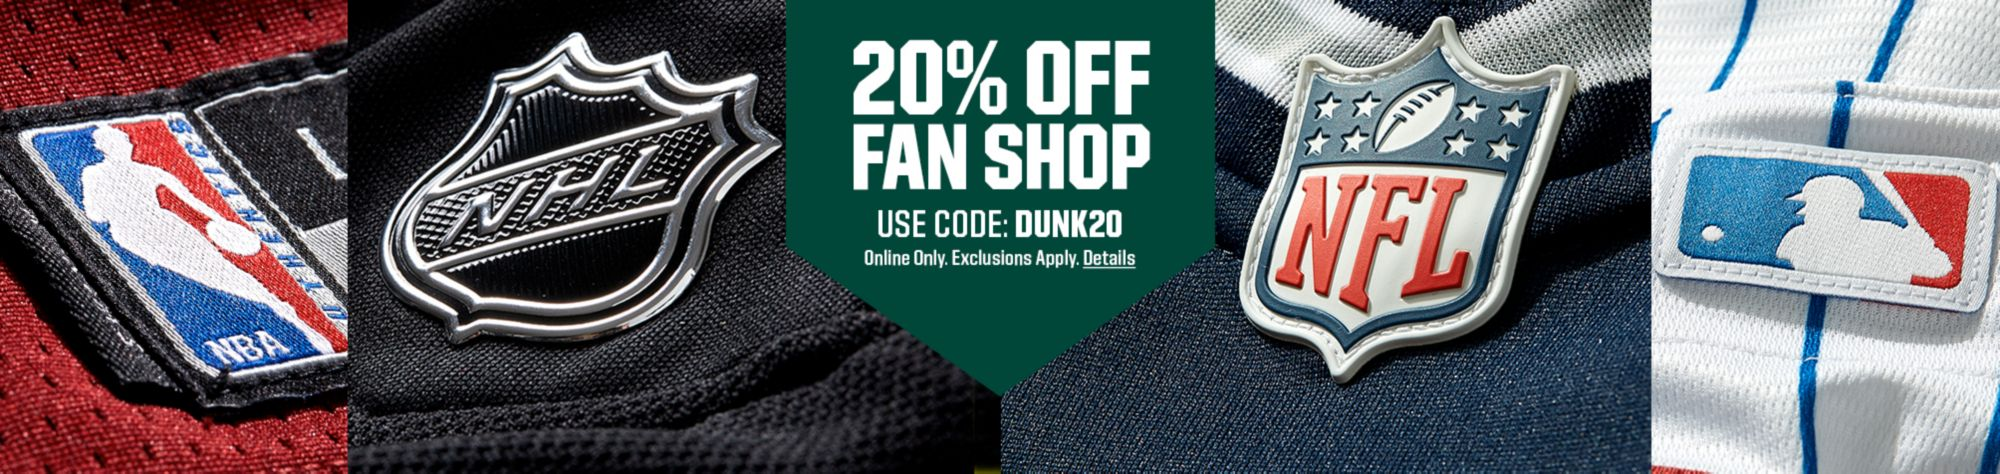 20% Off Fan Shop Use Code: DUNK20 Online Only. Exclusions Apply. Details